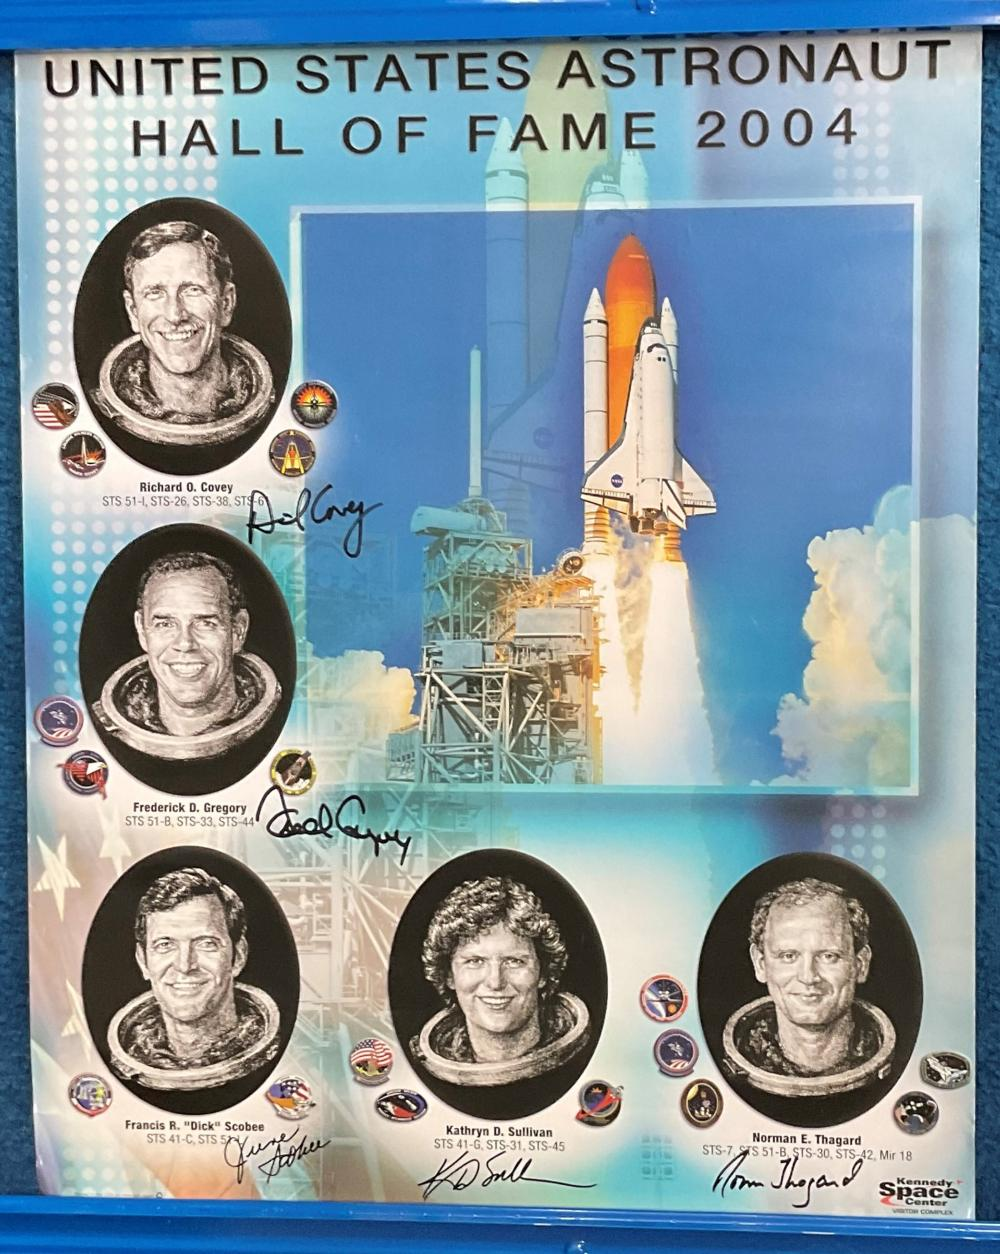 MULTI SIGNED United States Astronaut Hall of Fame 2004 poster. Designed for the Kennedy Space